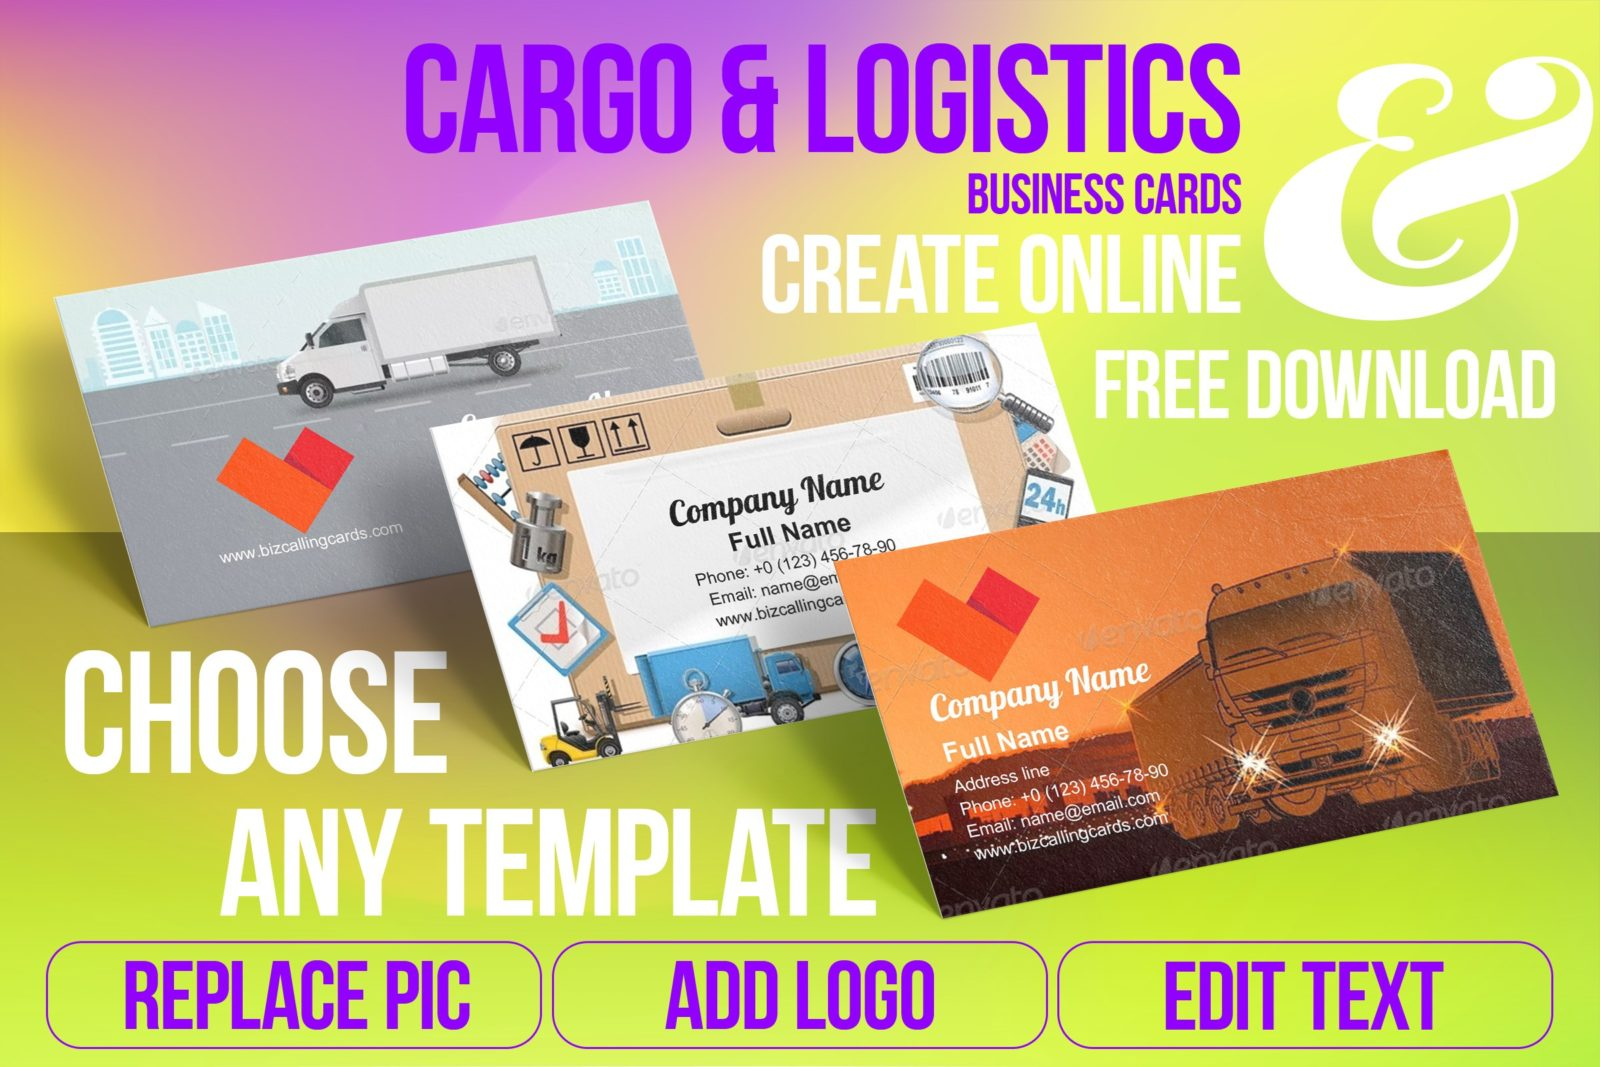 Business Card Templates For Cargo & Logistics Free Download